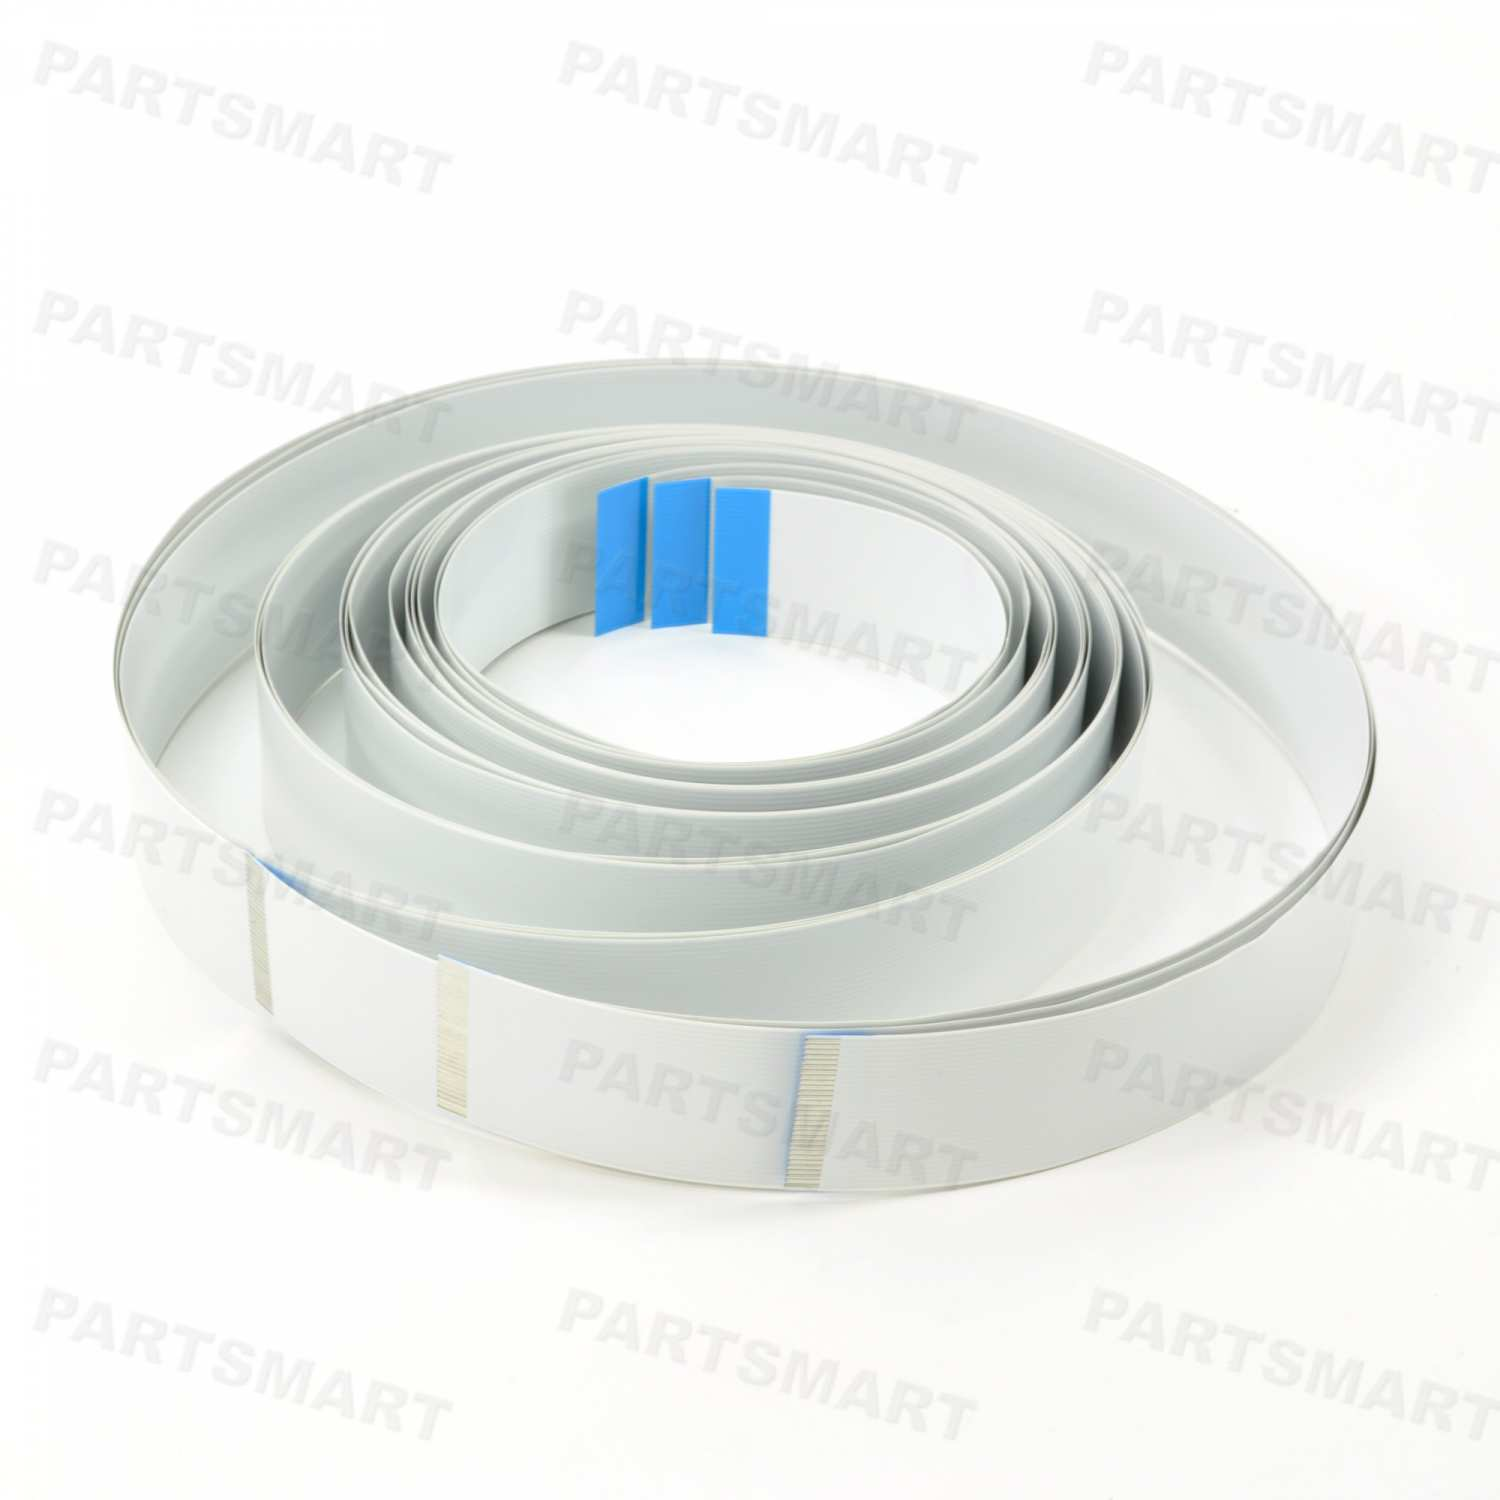 C4723-60237  Trailing Cable